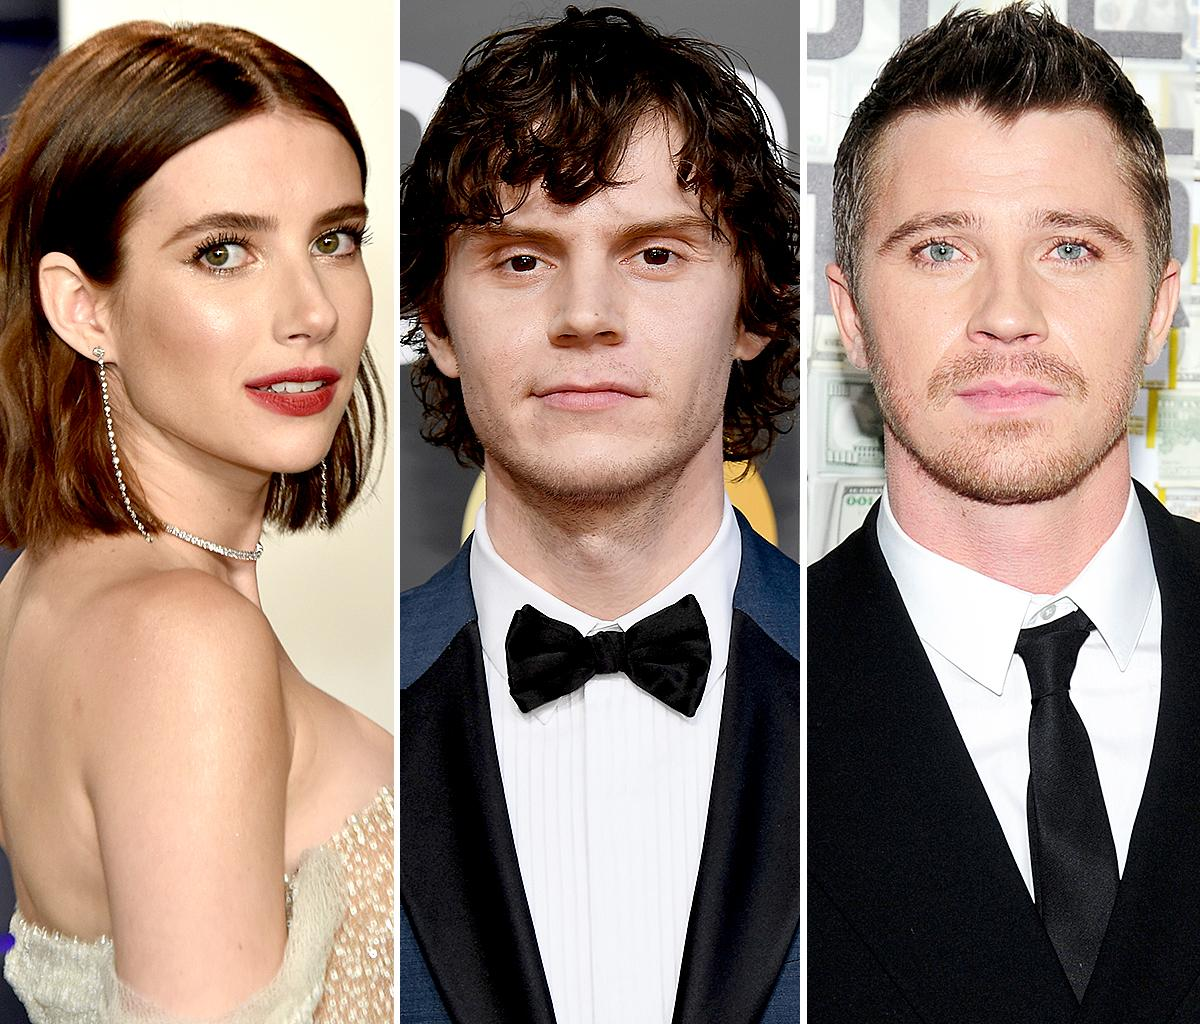 Emma Roberts And Evan Peters End Their Romance - She Reportedly Moves On With Garrett Hedlund!